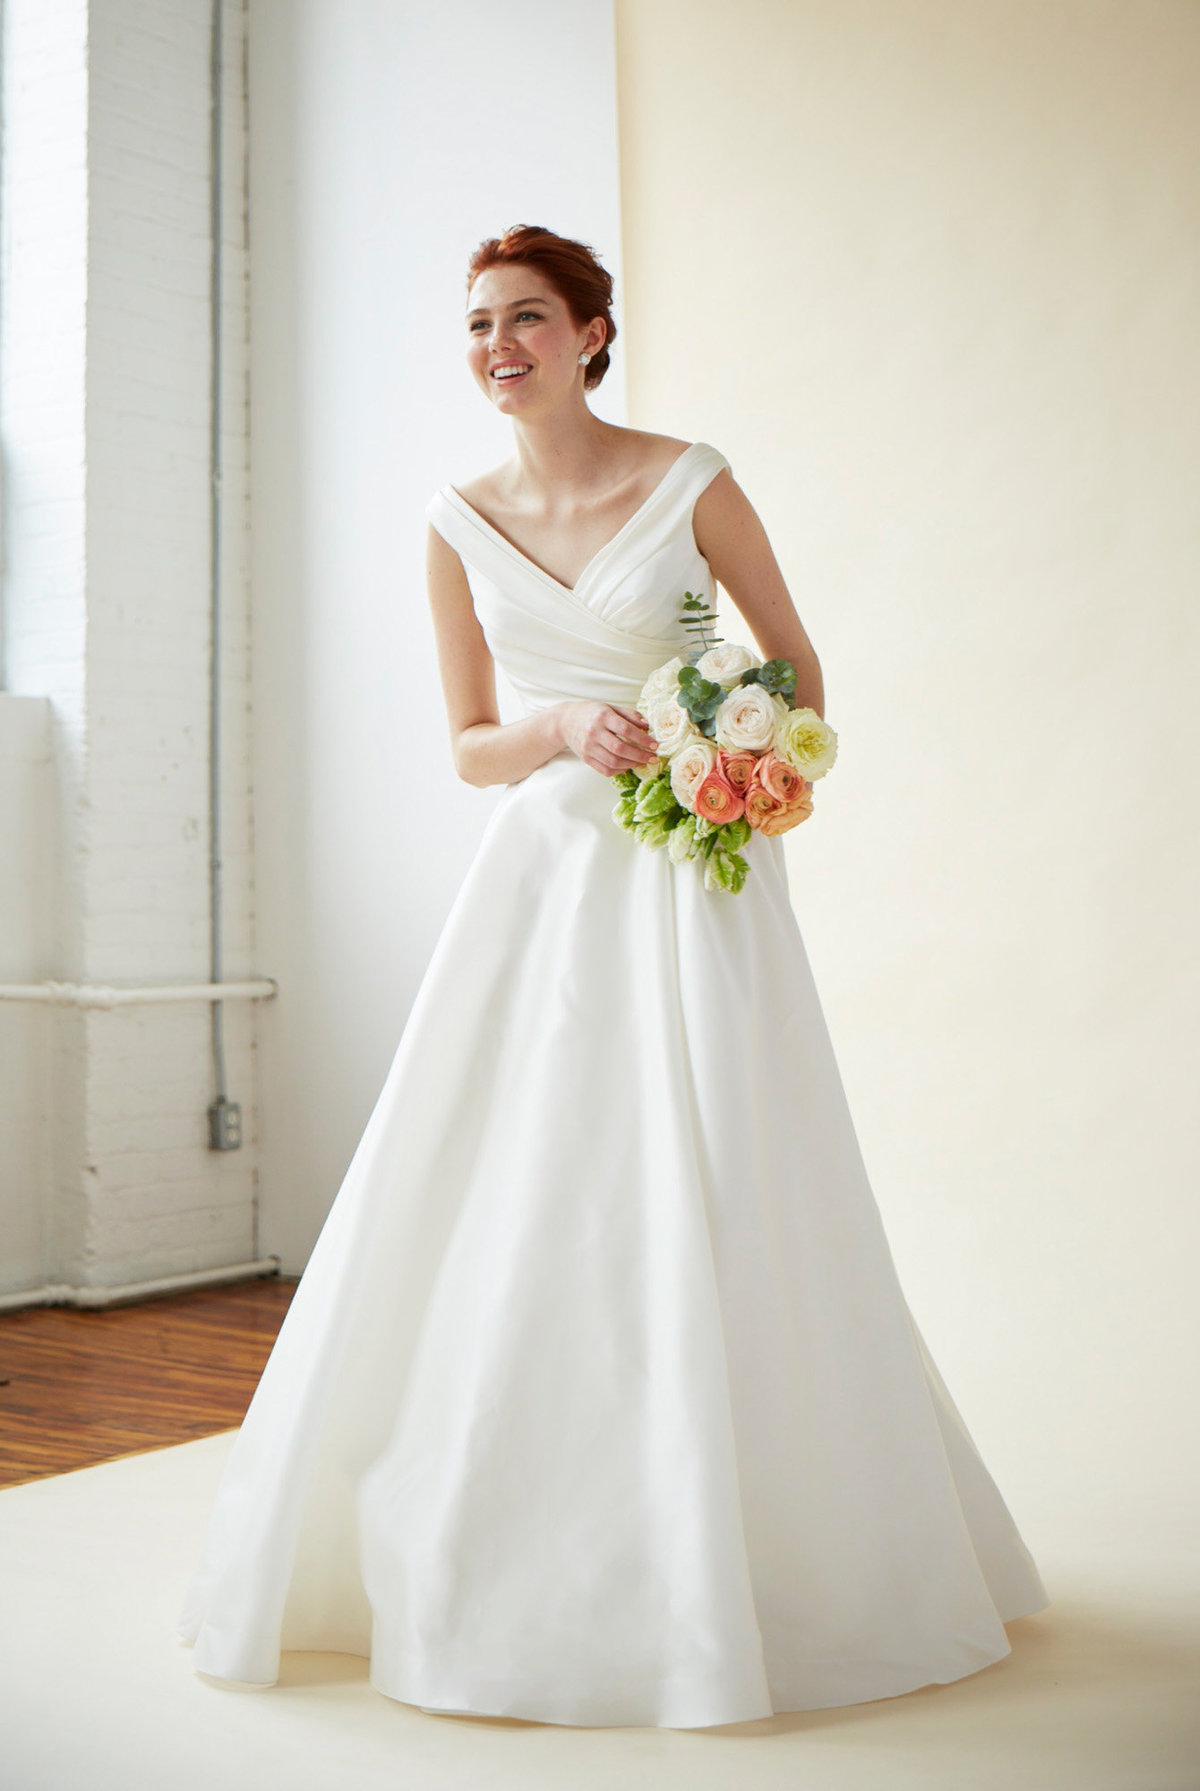 Lea-Ann-Belter-Bridal-Trunk-Show-Jessica-Haley-Bridal-Photo-001